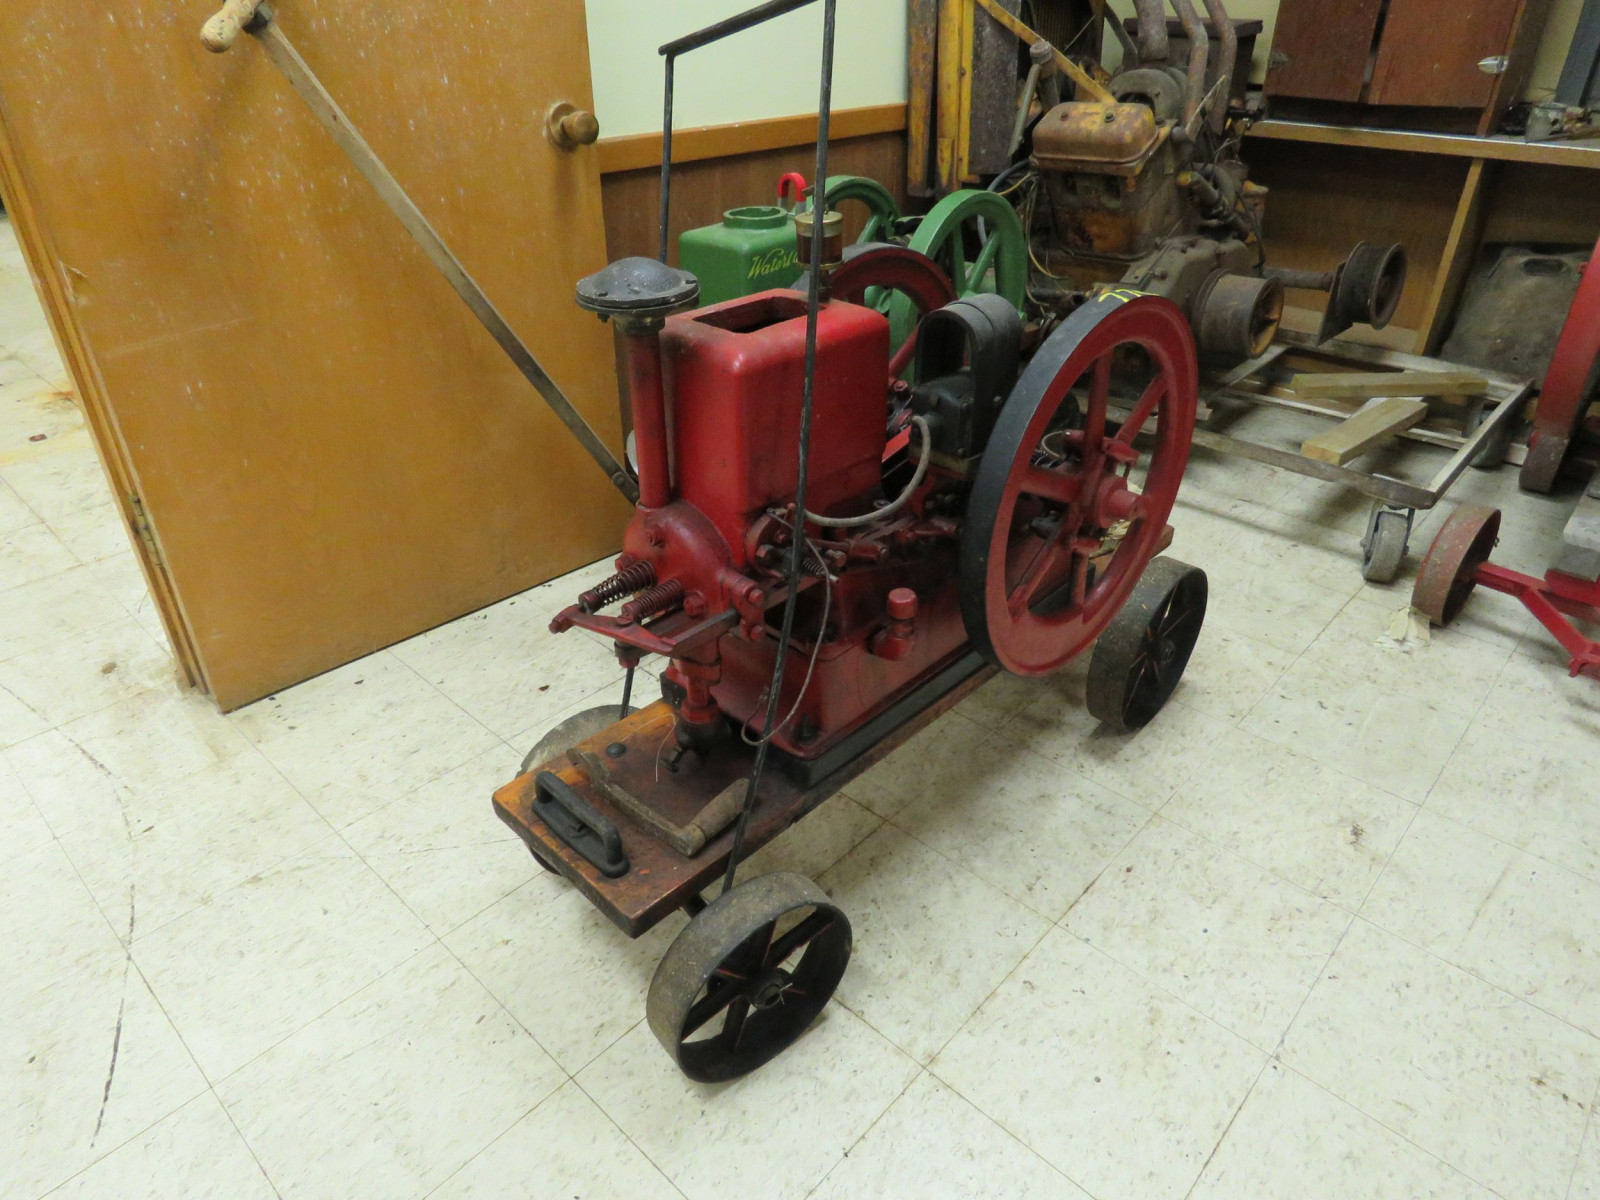 United Type A 2 1/4hp Stationary Engine 201159 - Image 2